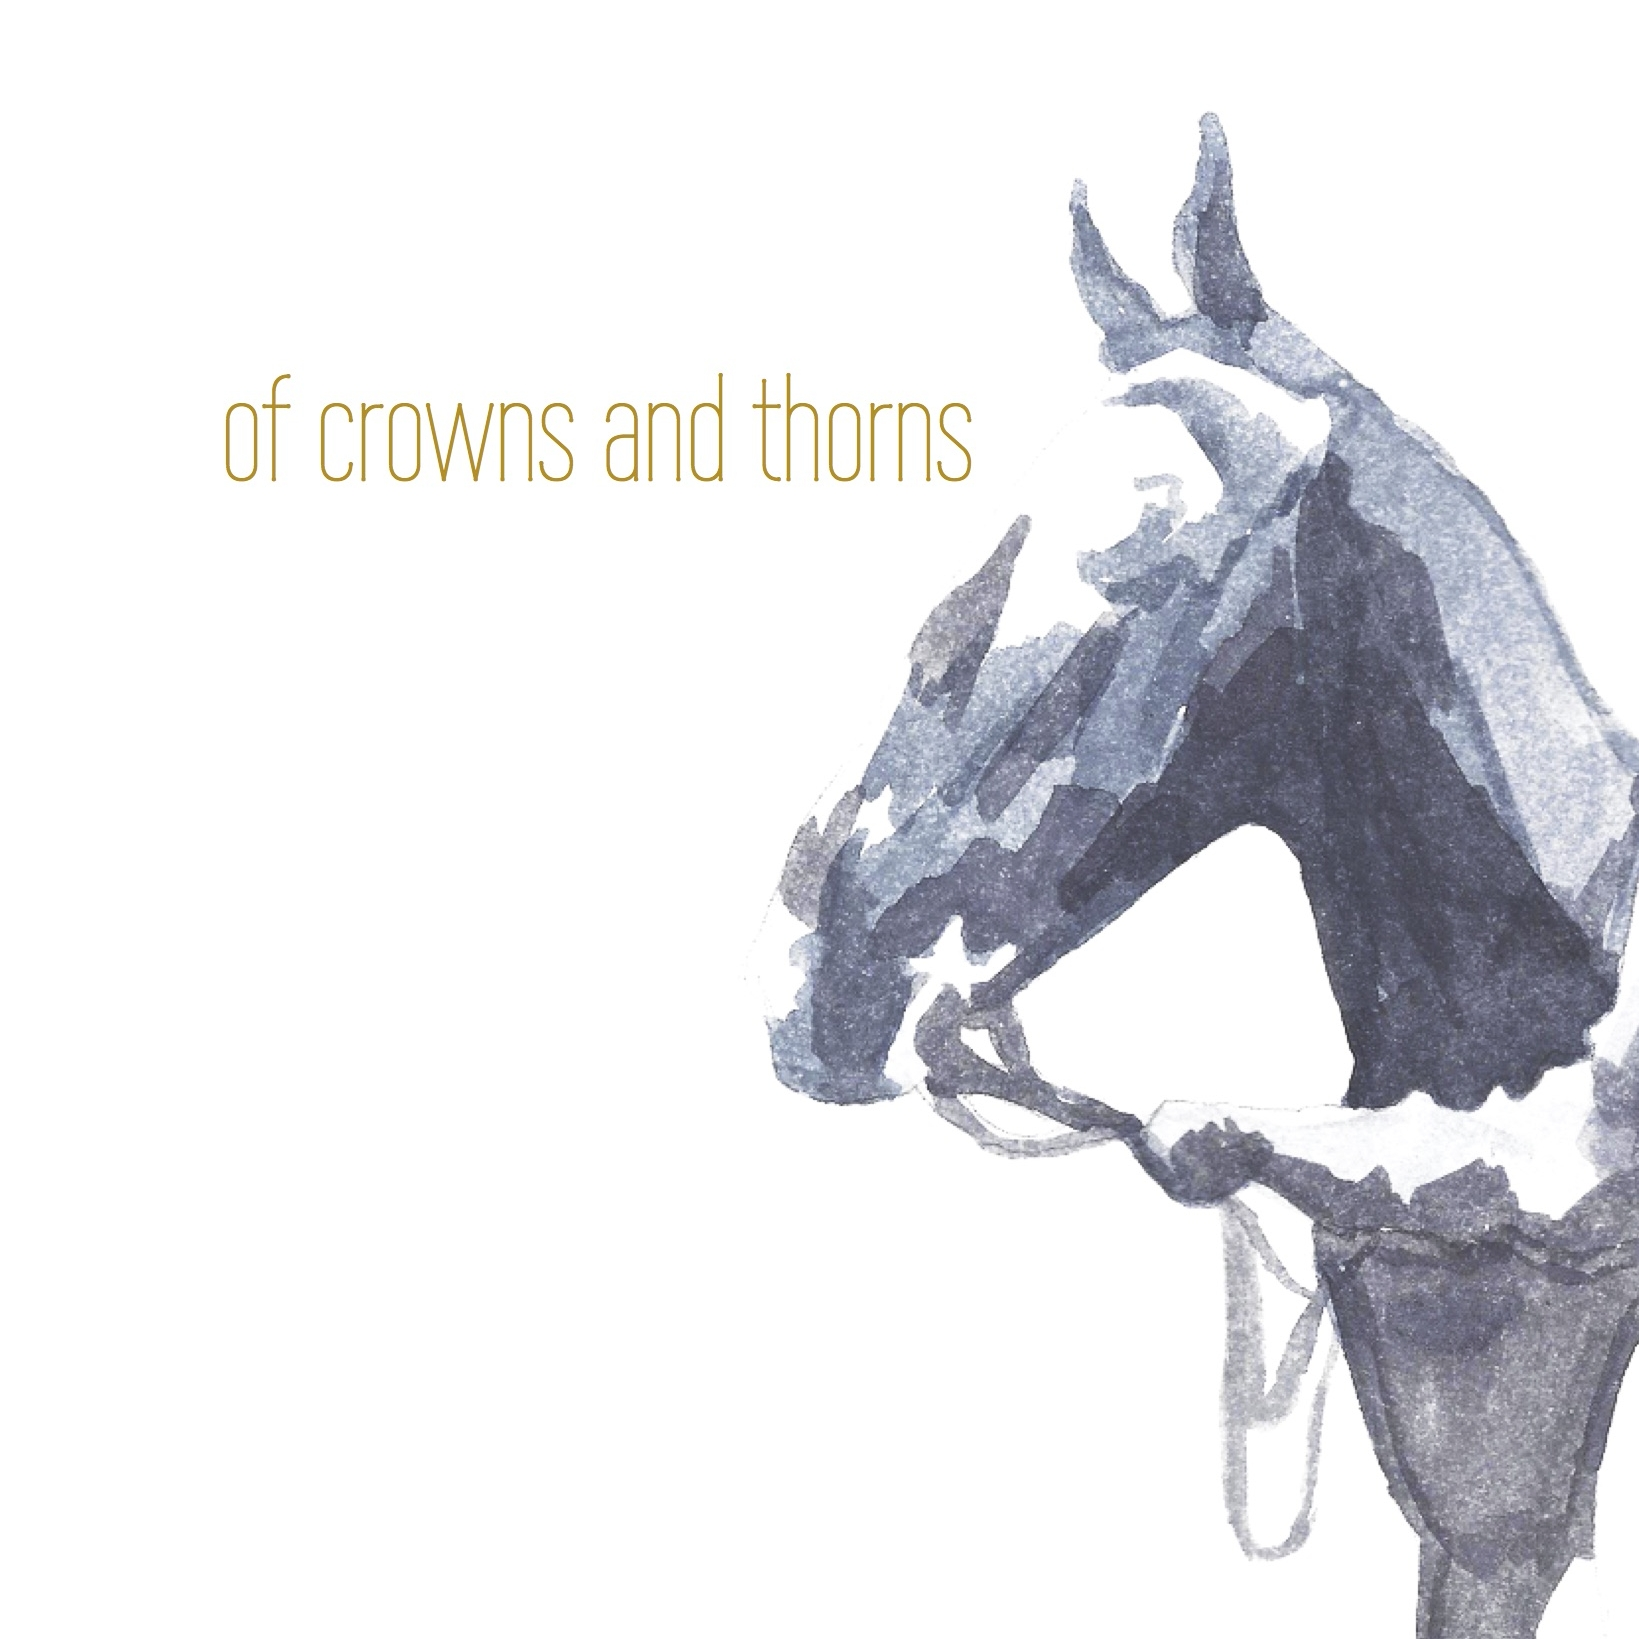 crowns and thorns 1050x1125.jpg